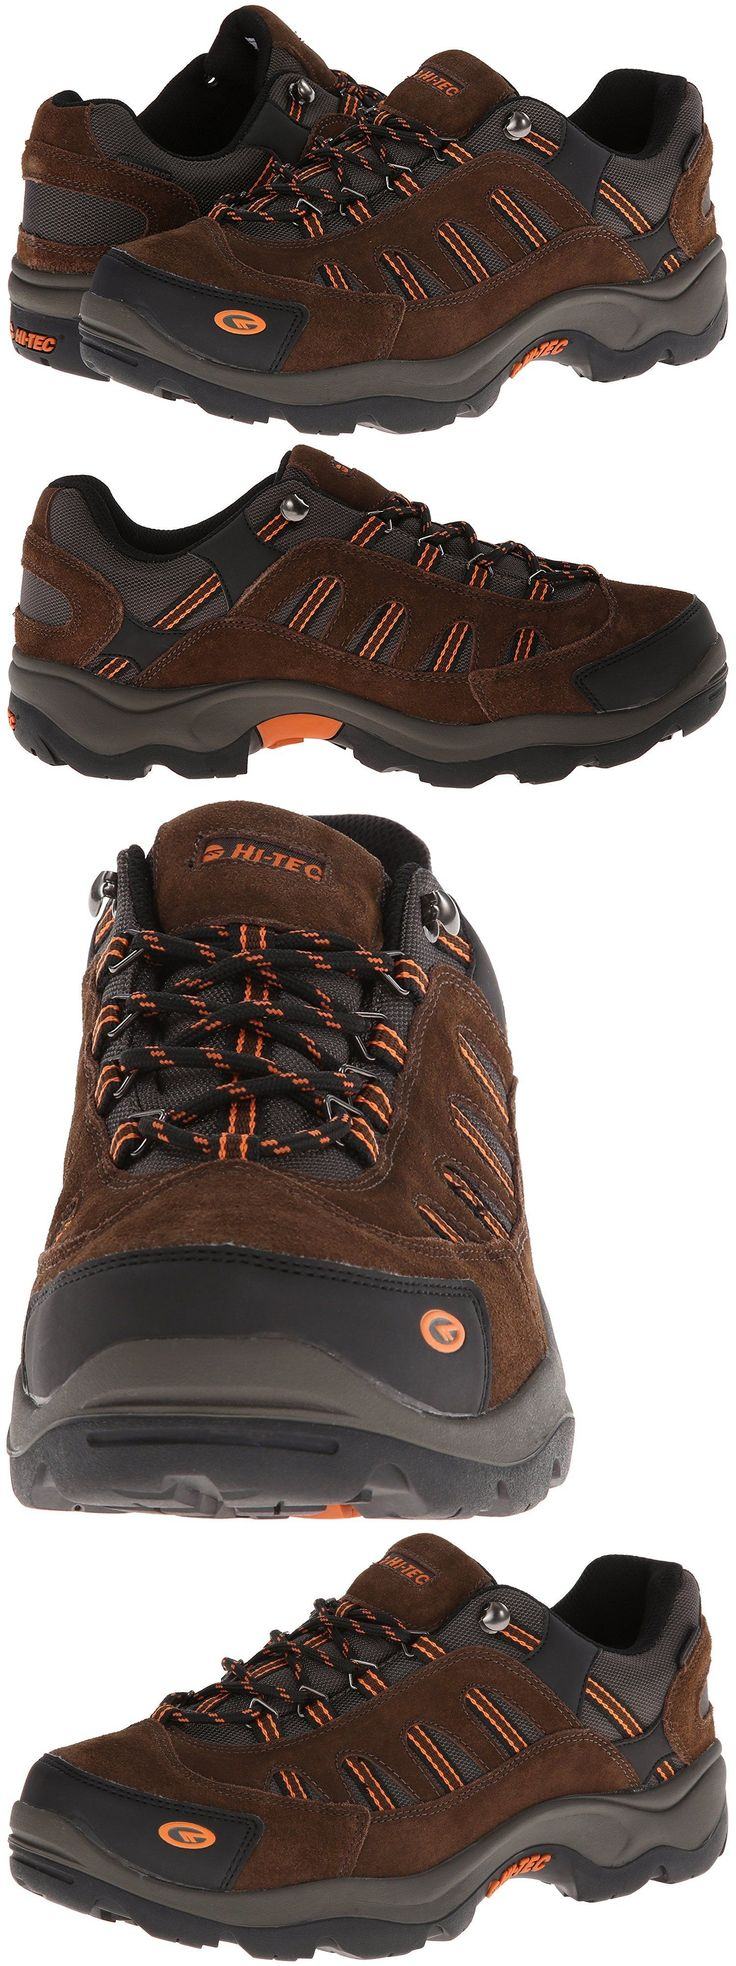 Mens 181392: Hi-Tec Men Size 8 Chocolate Brown Bandera Low Waterproof Hiking Boots Free Ship -> BUY IT NOW ONLY: $44.99 on eBay!